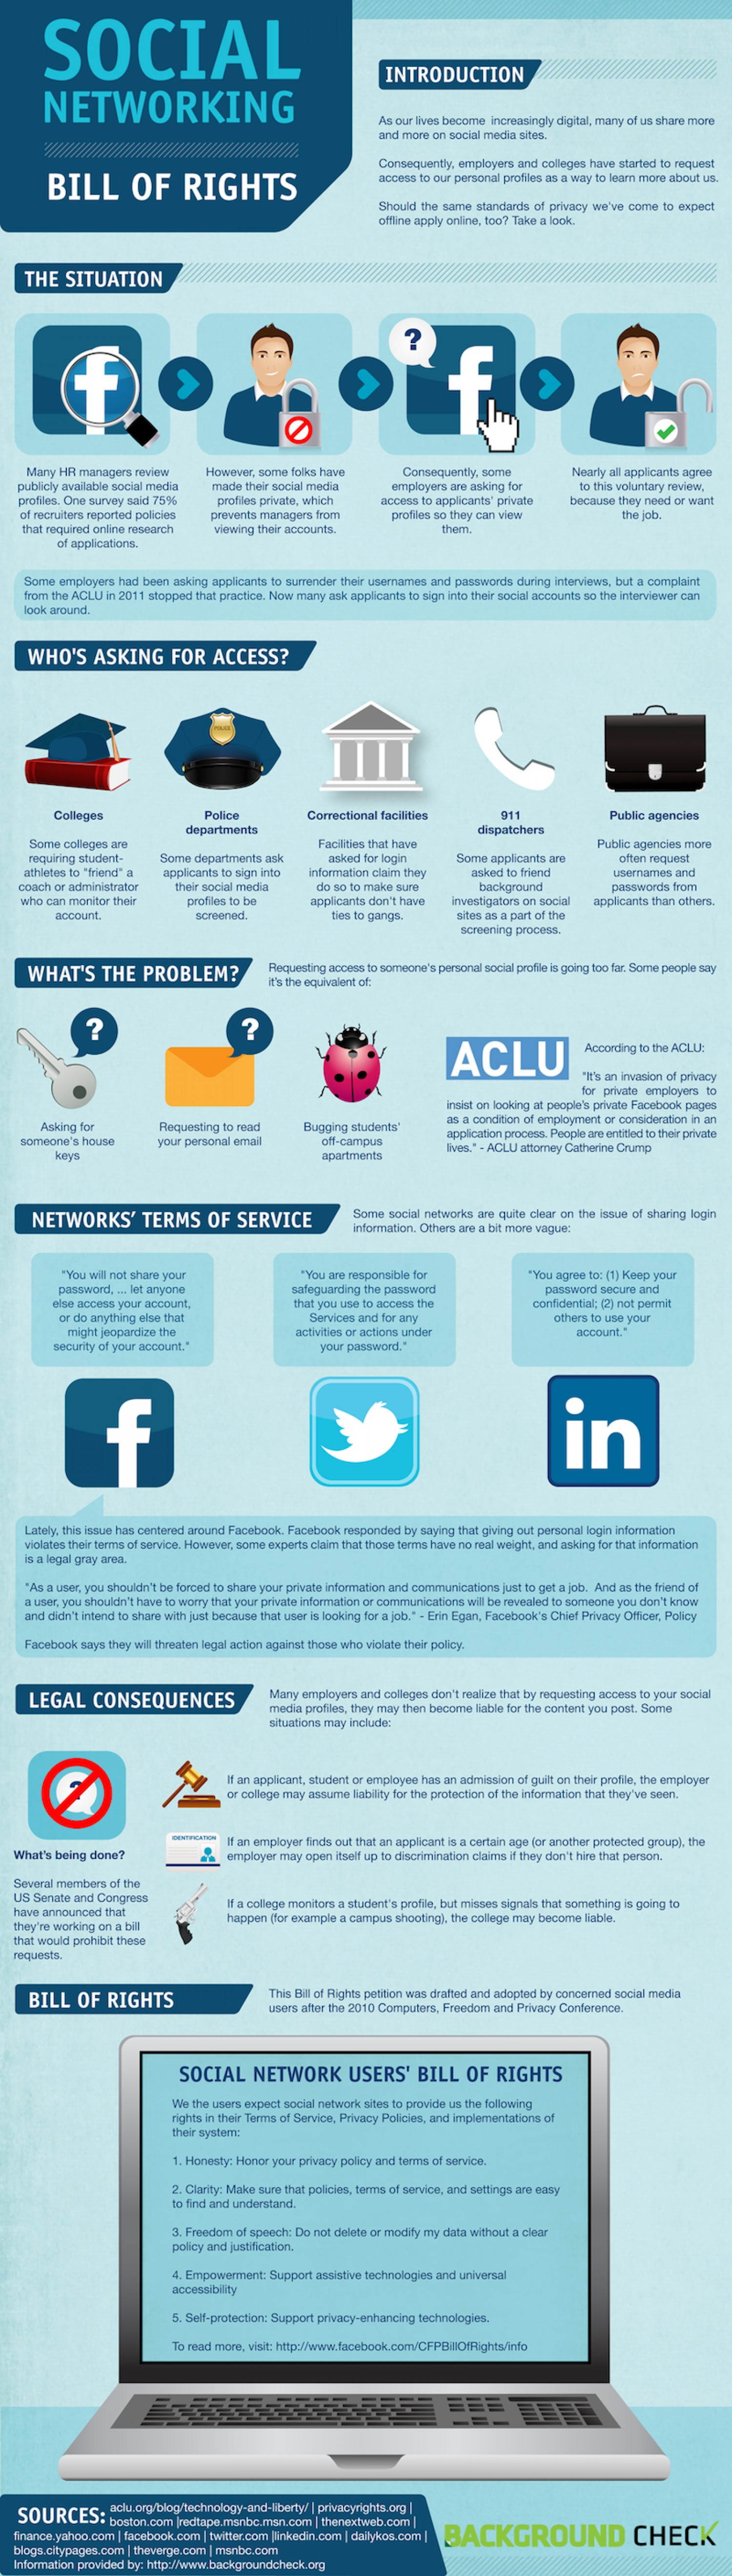 Social Networking Bill of Rights